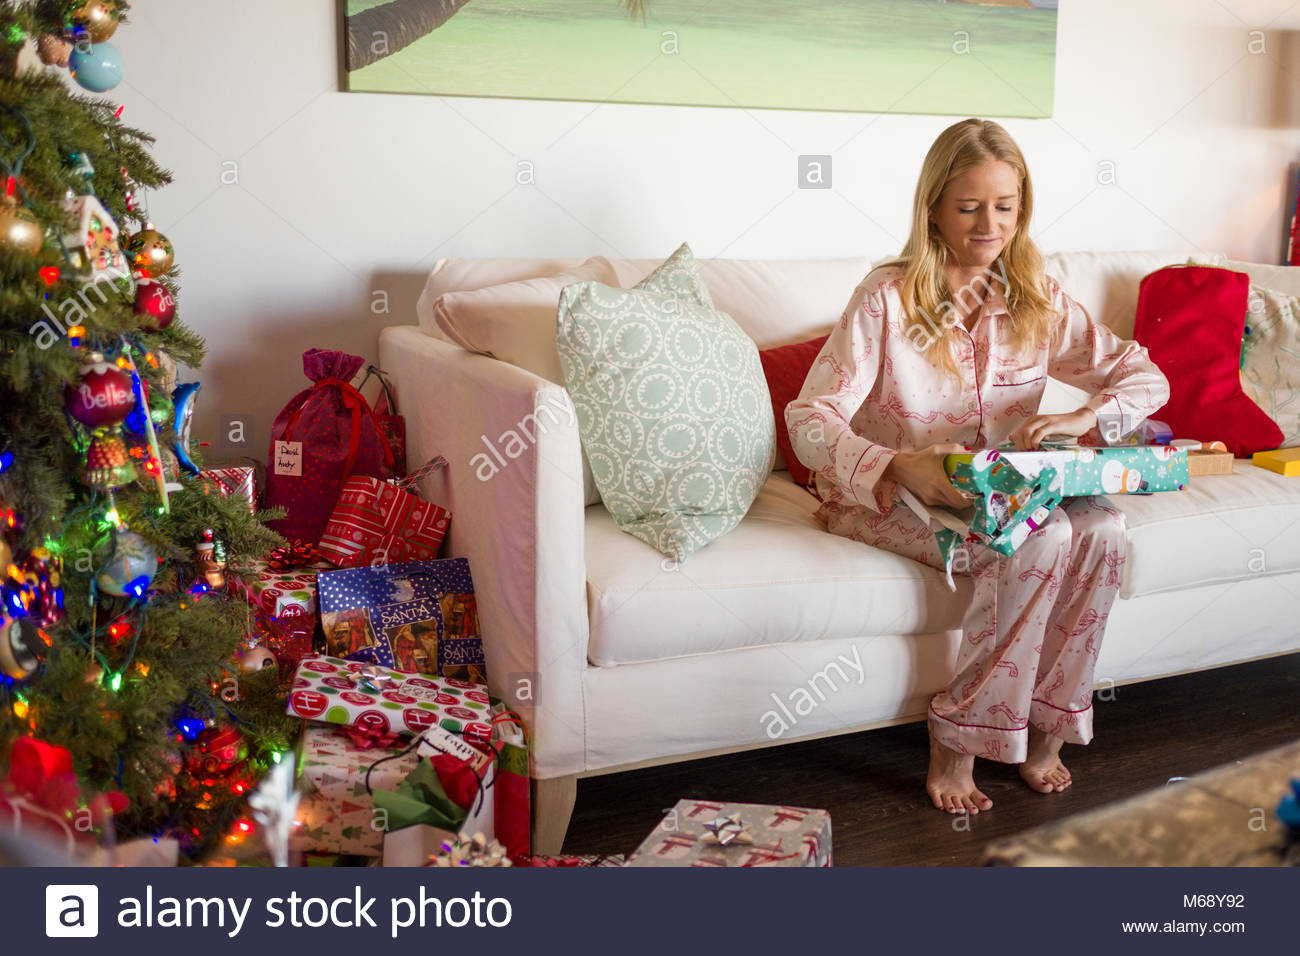 Young woman wearing pajamas sitting on couch opening gift wrapped Christmas present on Christmas morning, USA - Stock Image